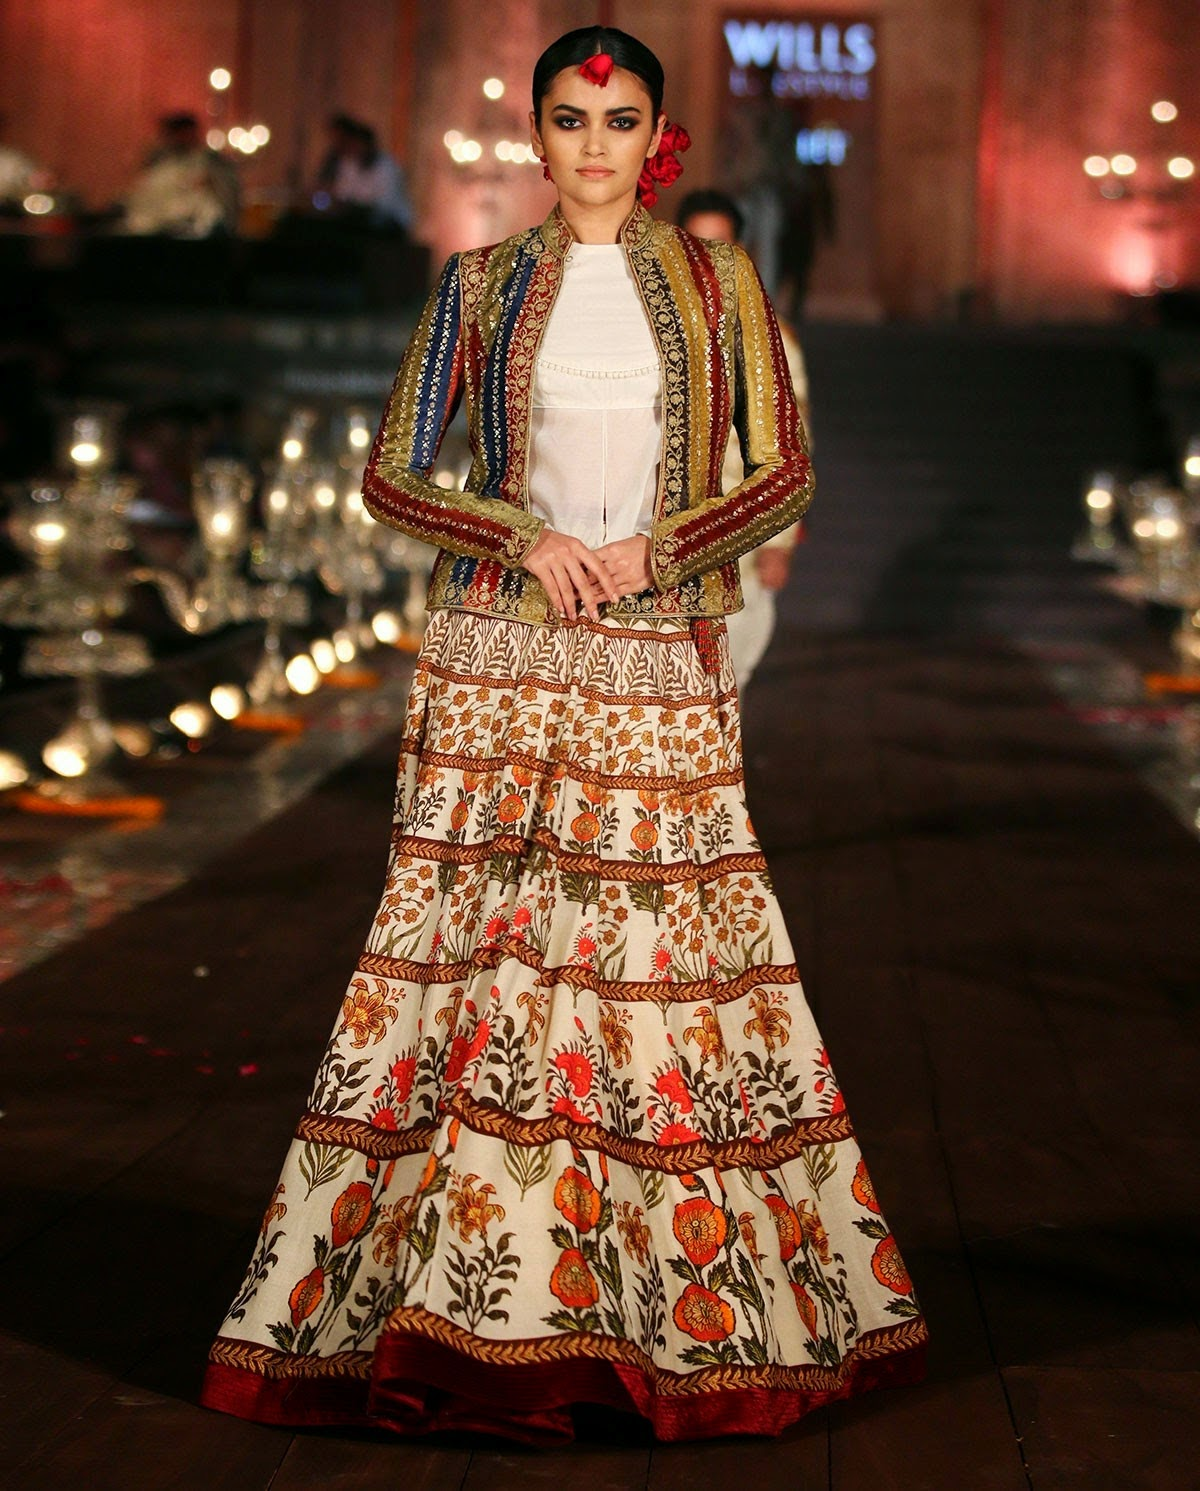 Rohit Bal's Wills SS 15 Gulbagh Collection